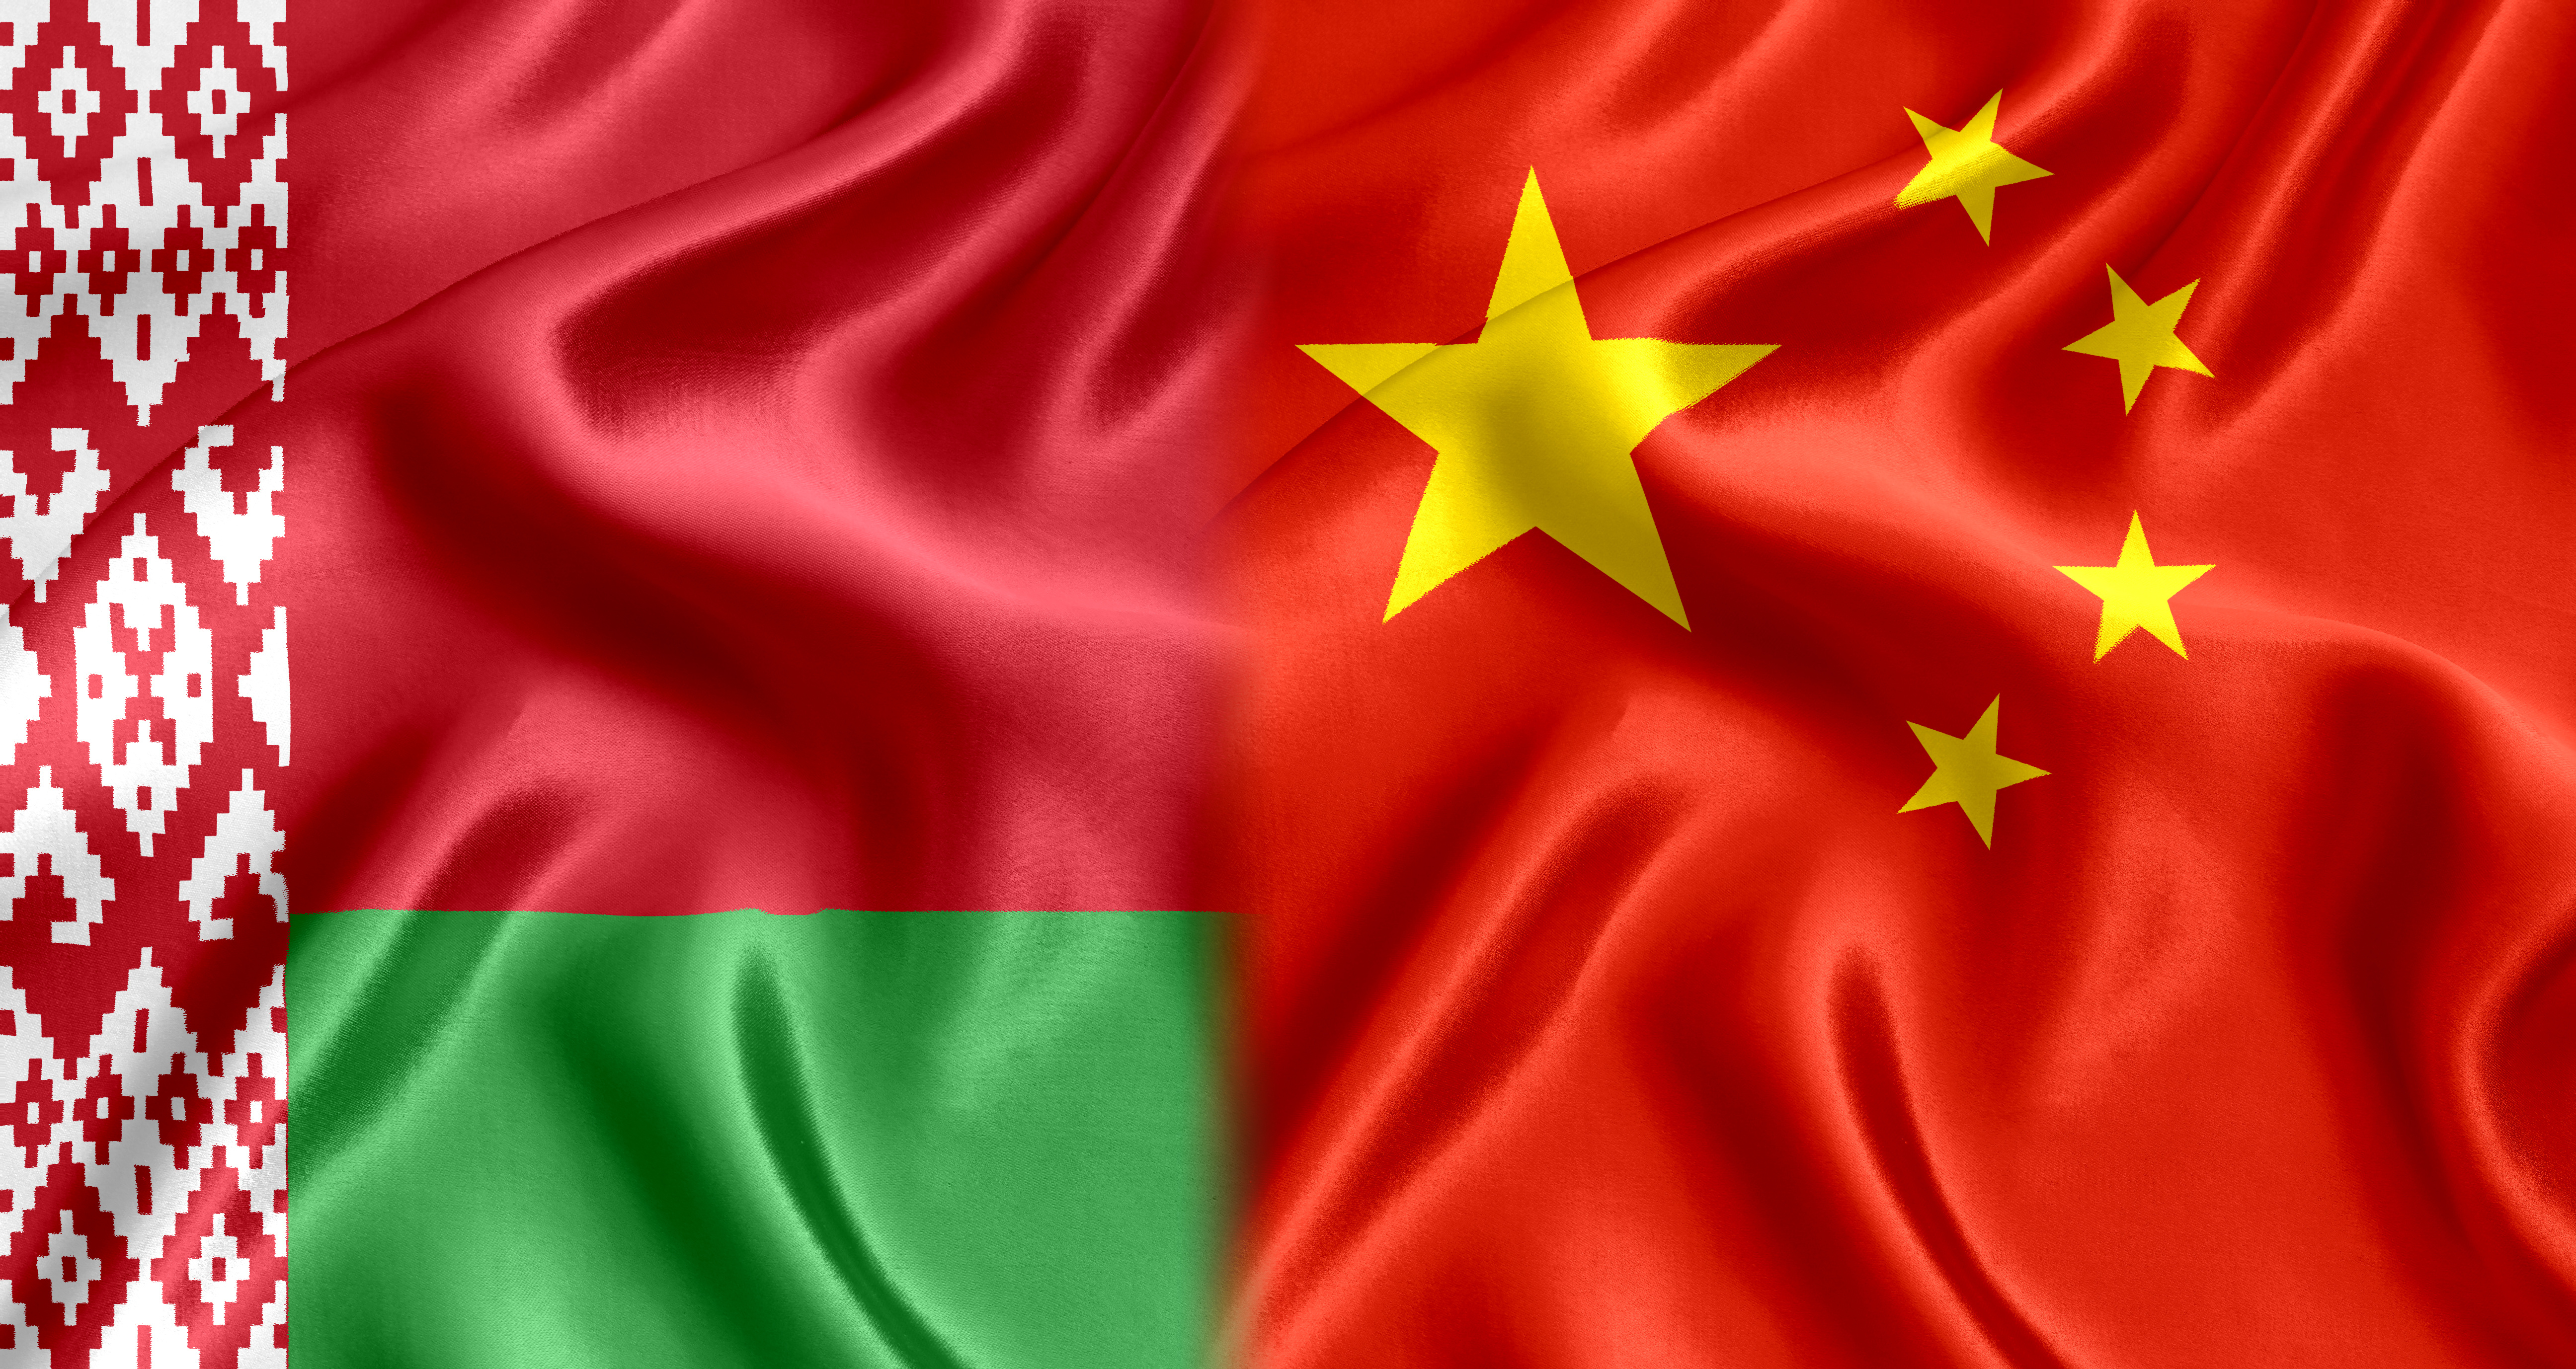 Belarus and China: Economic connectivity at its best